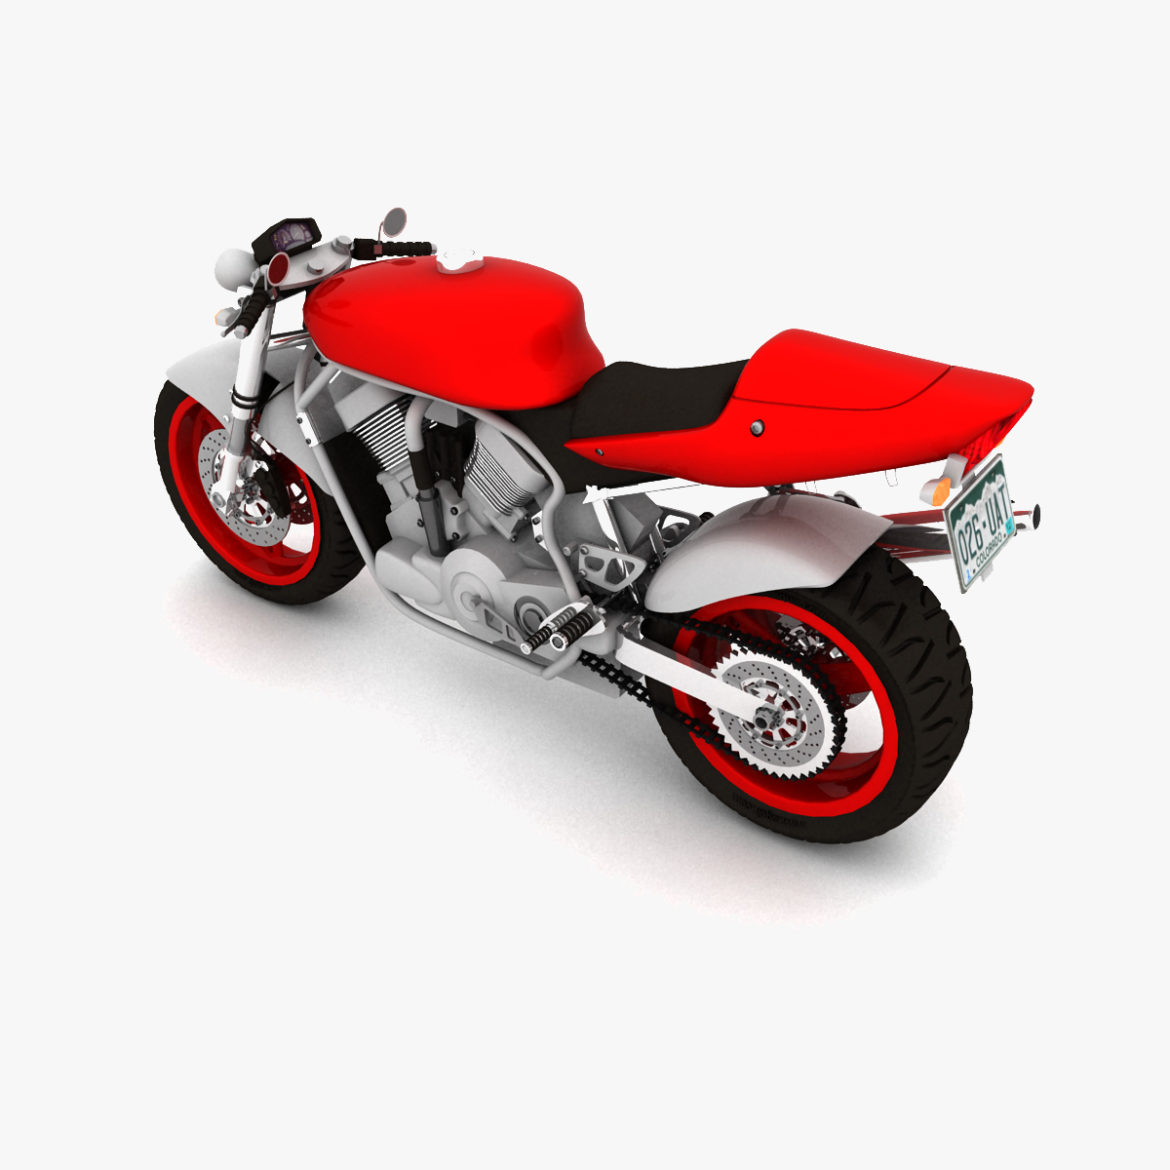 suzuki street fighter motorcycle 3d model 3ds max fbx obj 293870